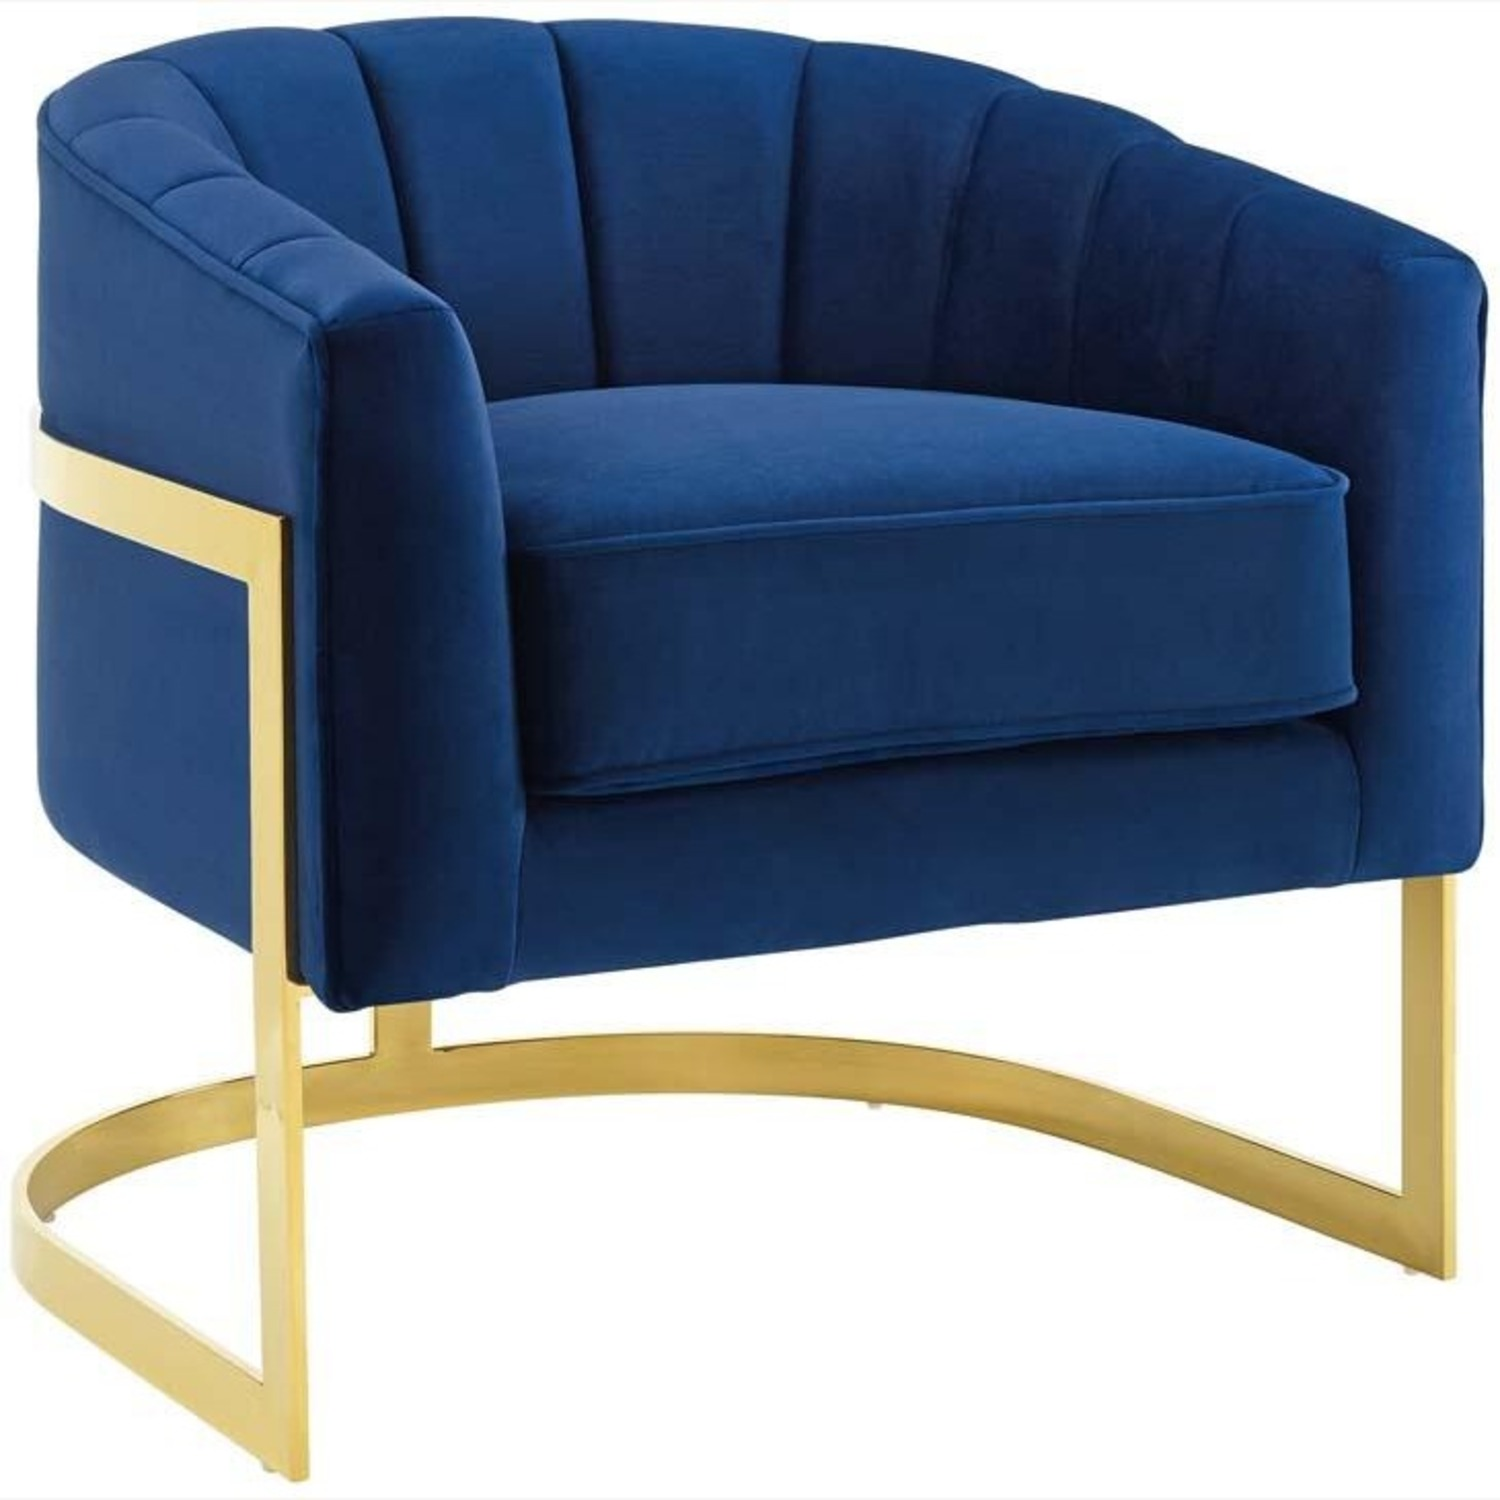 Accent Chair In Navy Velvet W/ Channel Tufting - image-0